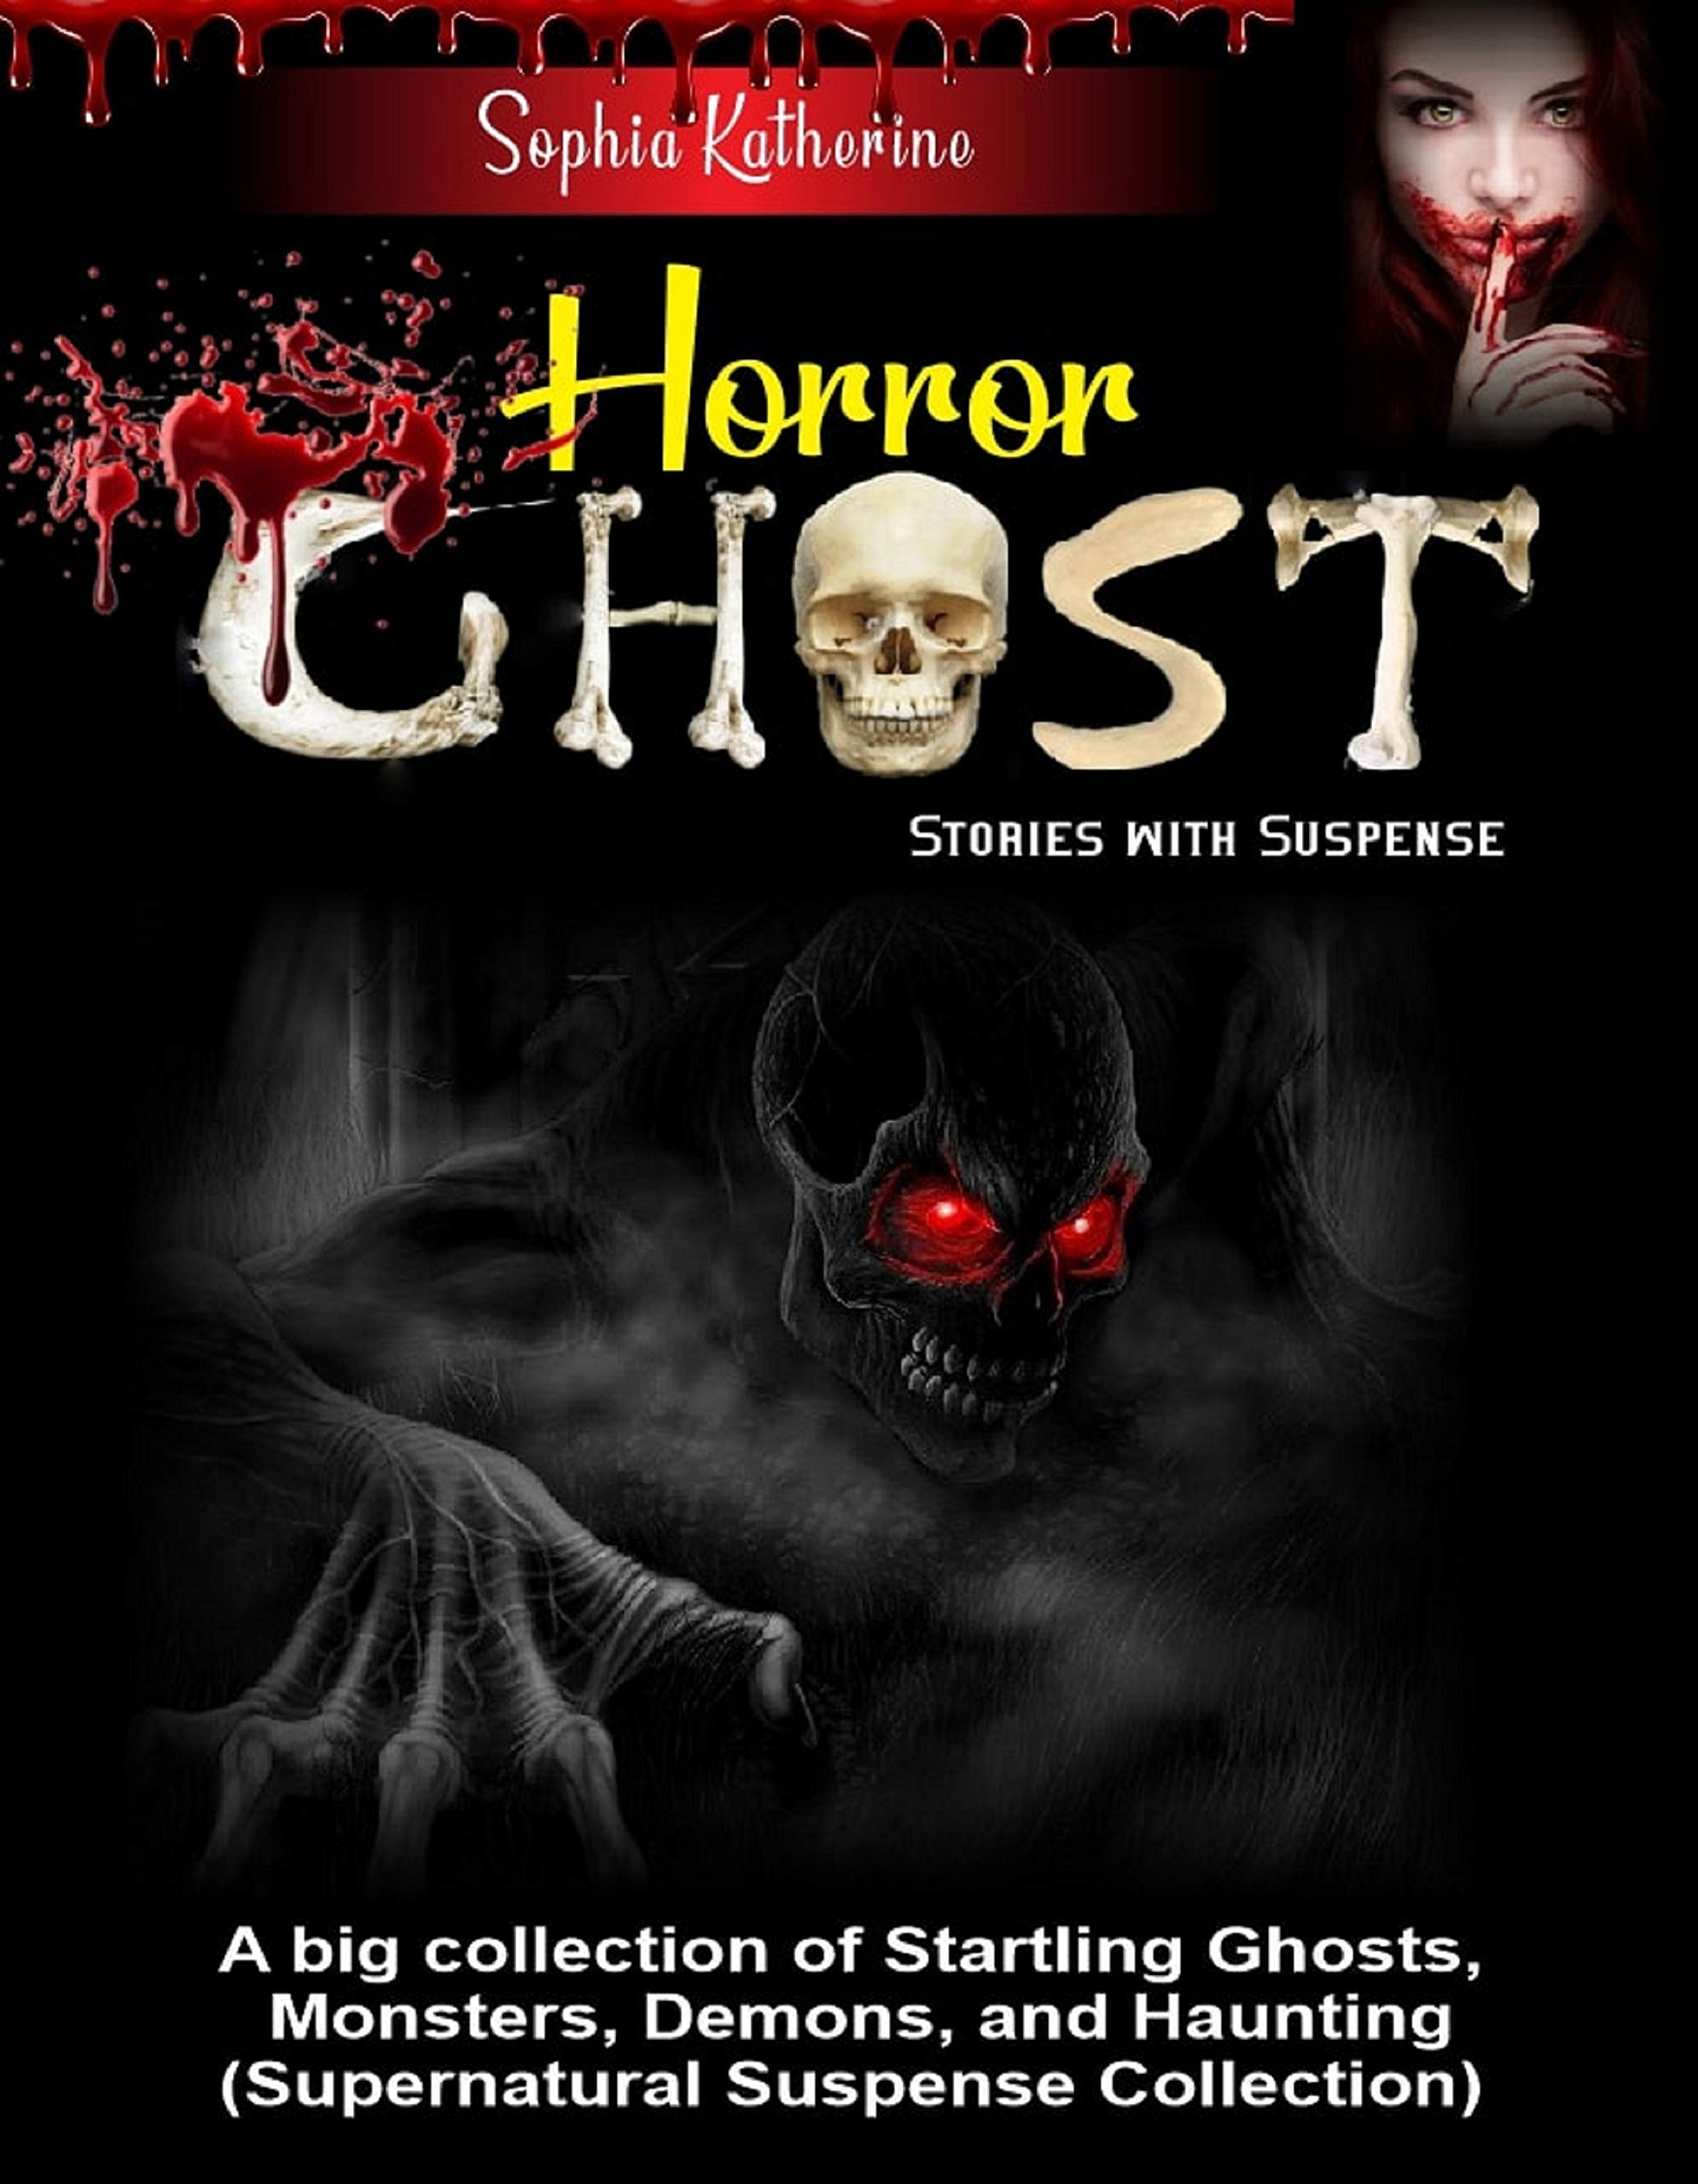 Horror Ghost Stories with Suspense: A big collection of Startling Ghosts, Monsters, Demons, and Haunting